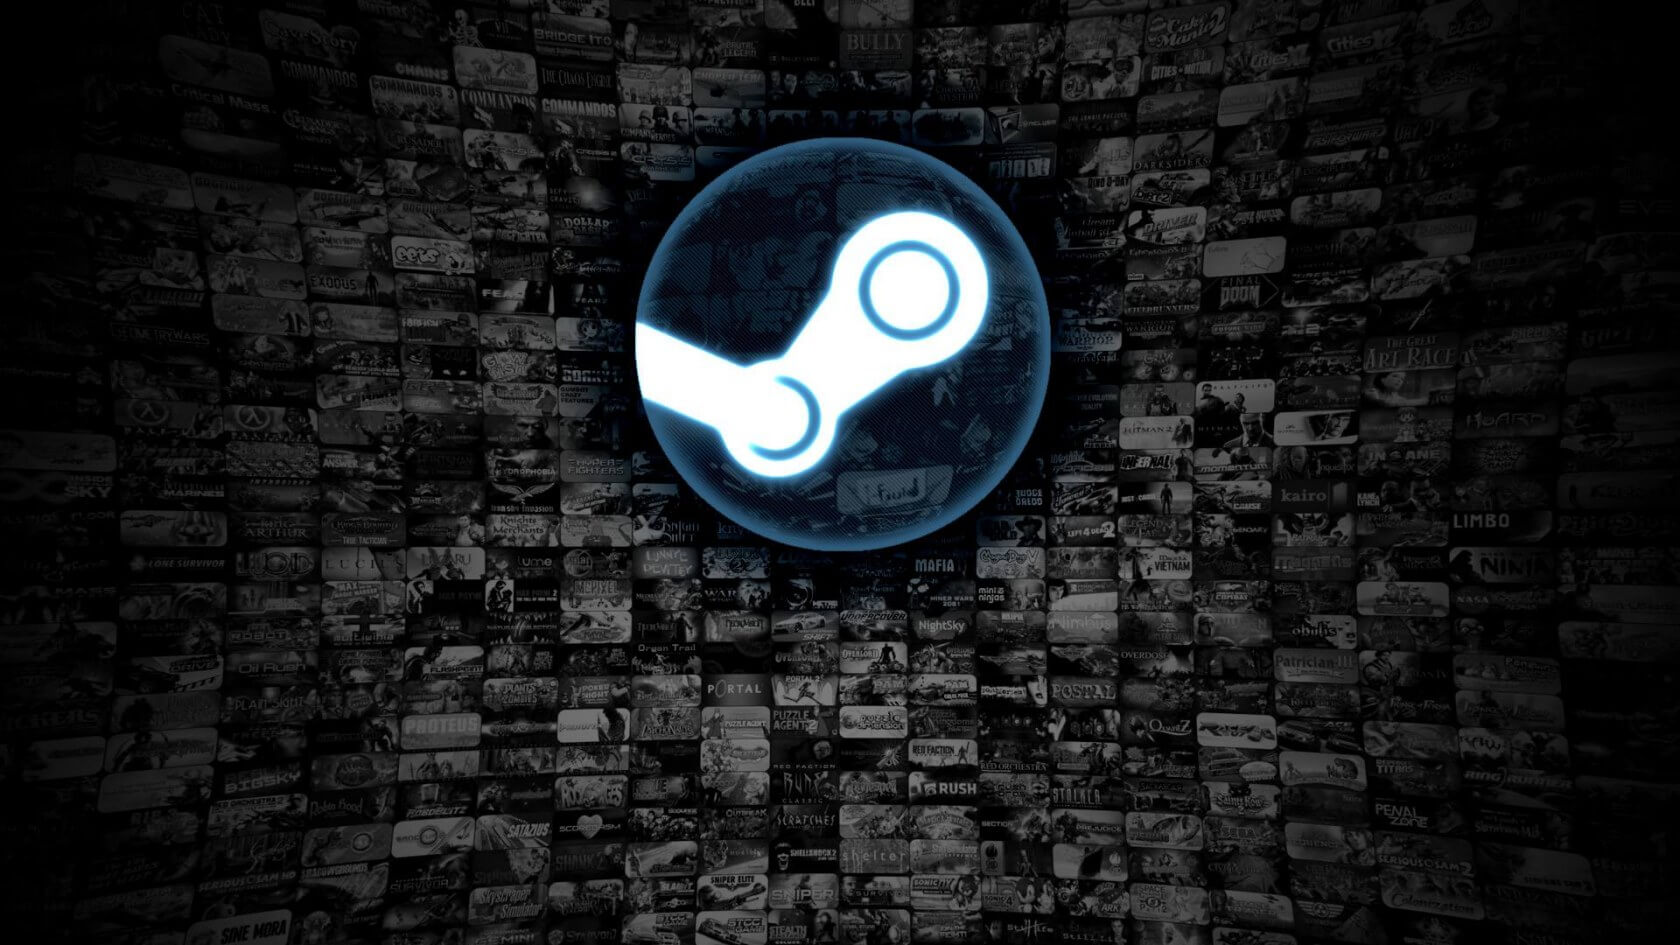 Steam users clocked in over 20 billion hours of gameplay in 2019